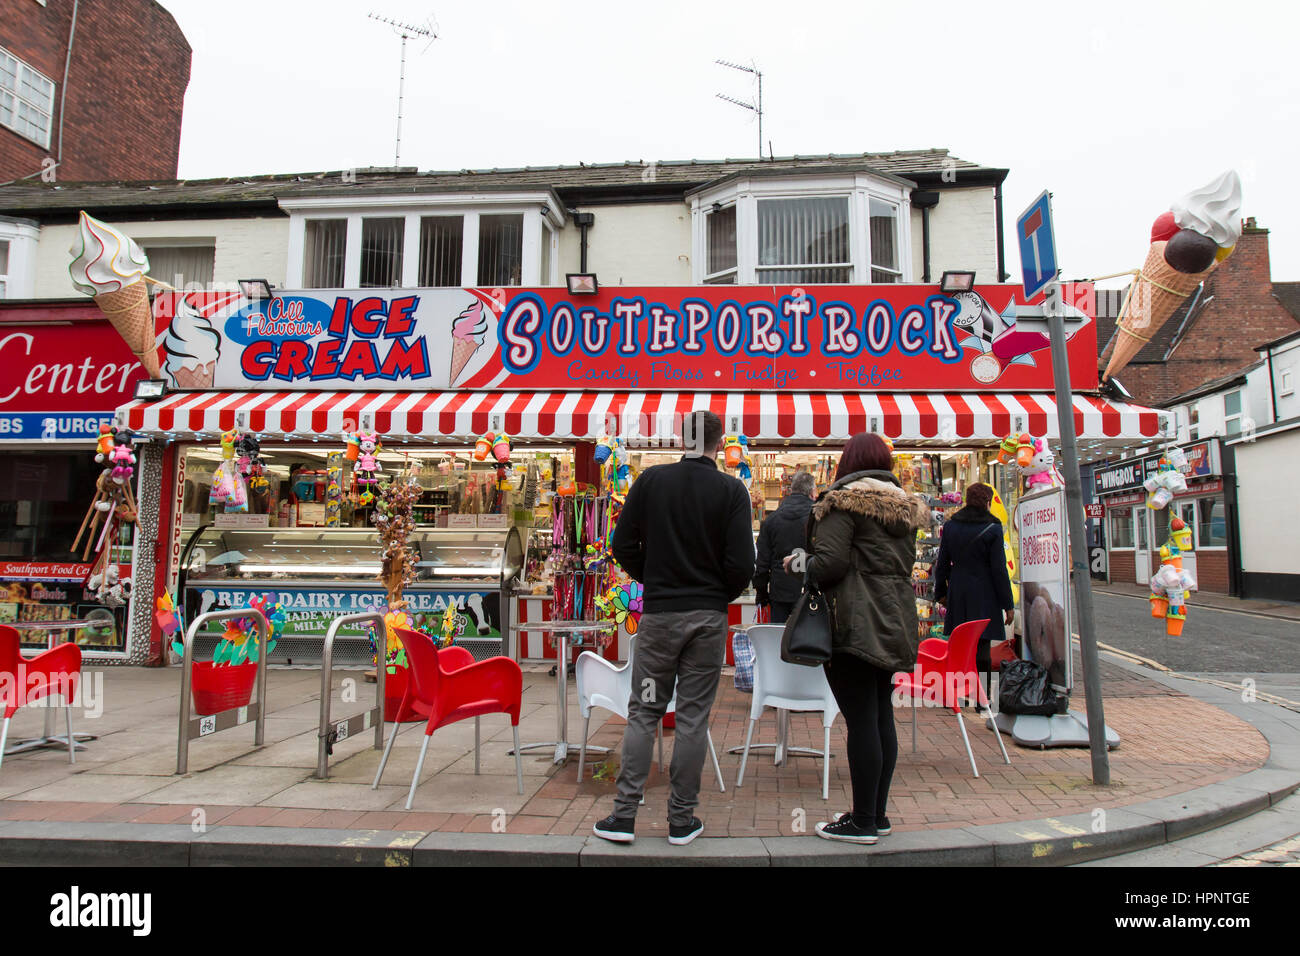 Visitors buy souvenirs and ice cream at a shop close to Southport sea front, during an unseasonally warm February - Stock Image